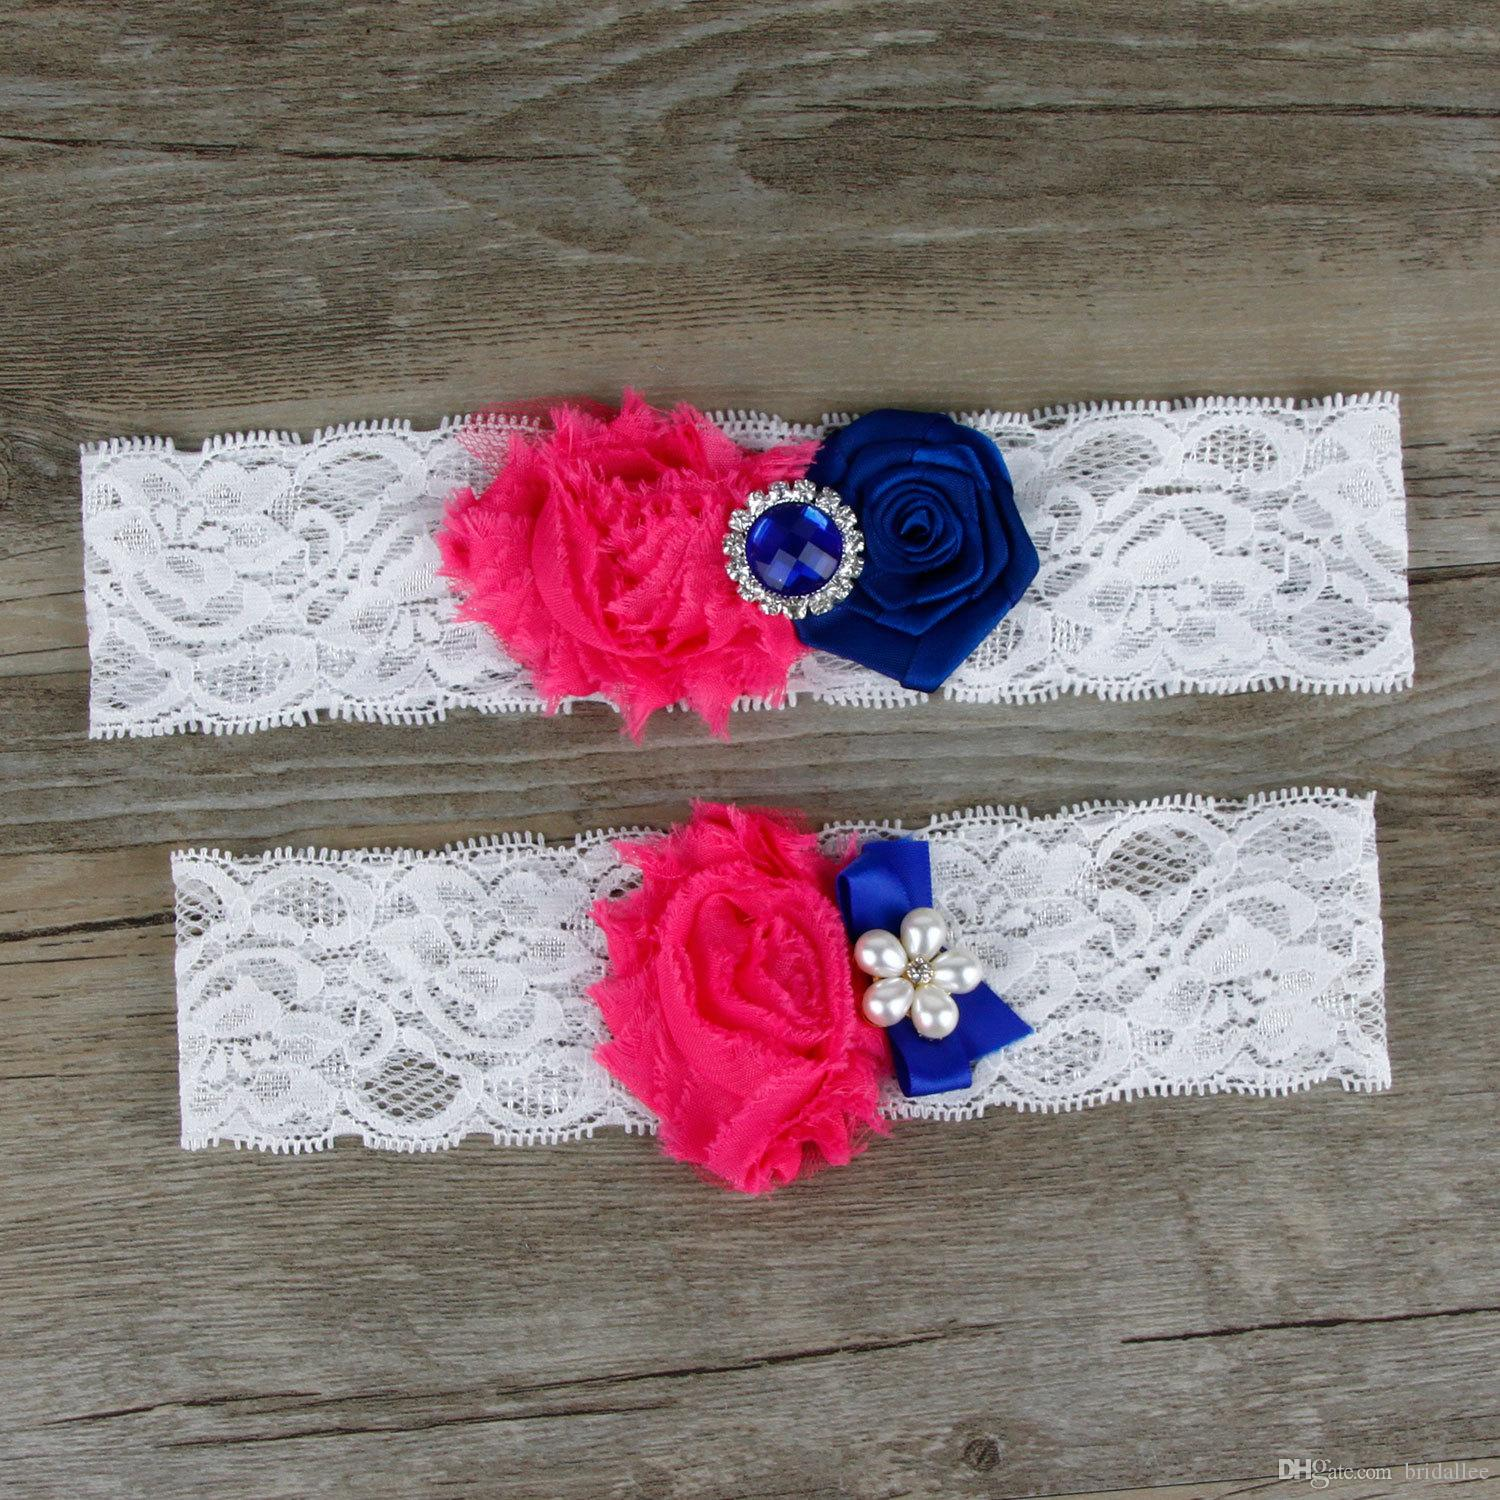 Real Picture Lace Bridal Garters Handmade Flowers Crystal Wedding Garters Pearls White Nave Blue and Fuchsia Flower Cheap Wedding Leg Garter